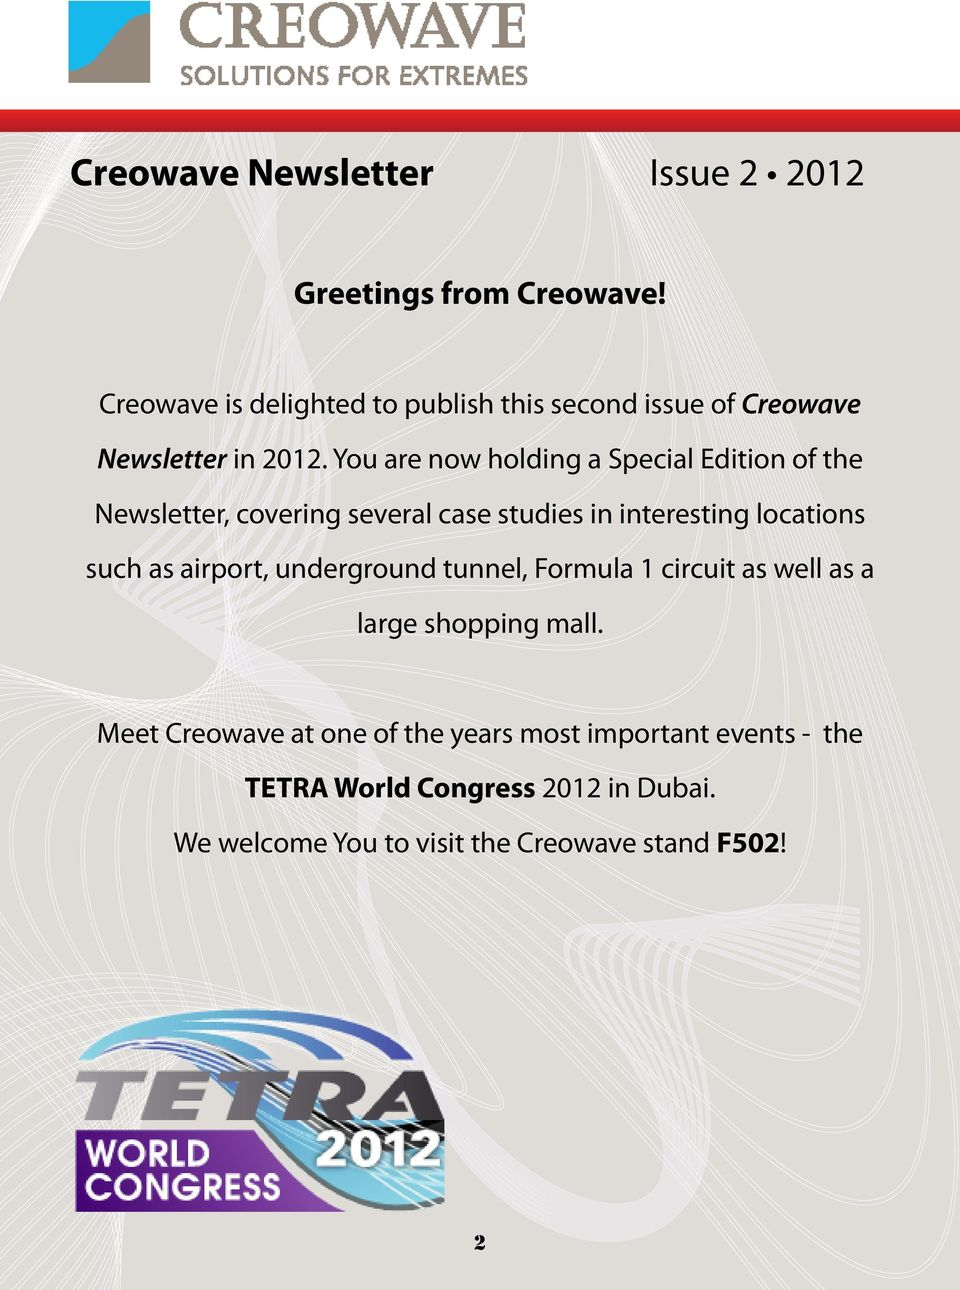 You are now holding a Special Edition of the Newsletter, covering several case studies in interesting locations such as